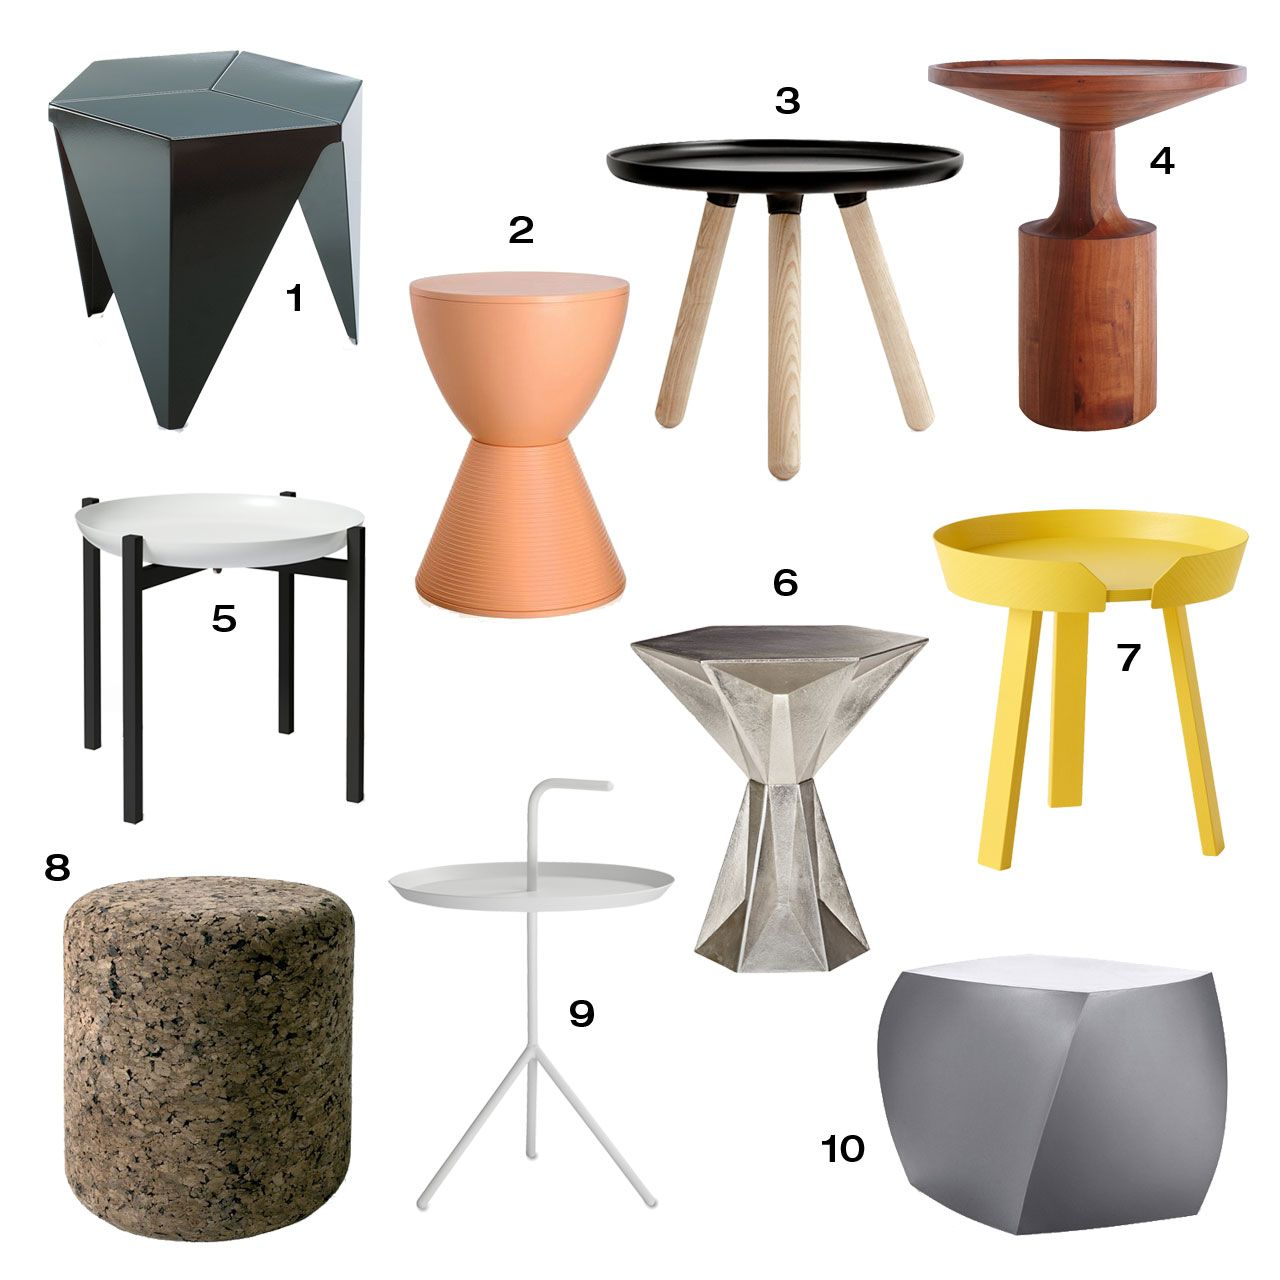 Roundup 10 Modern Side Tables Modern Side Table Design Modern Side Table Side Table Design